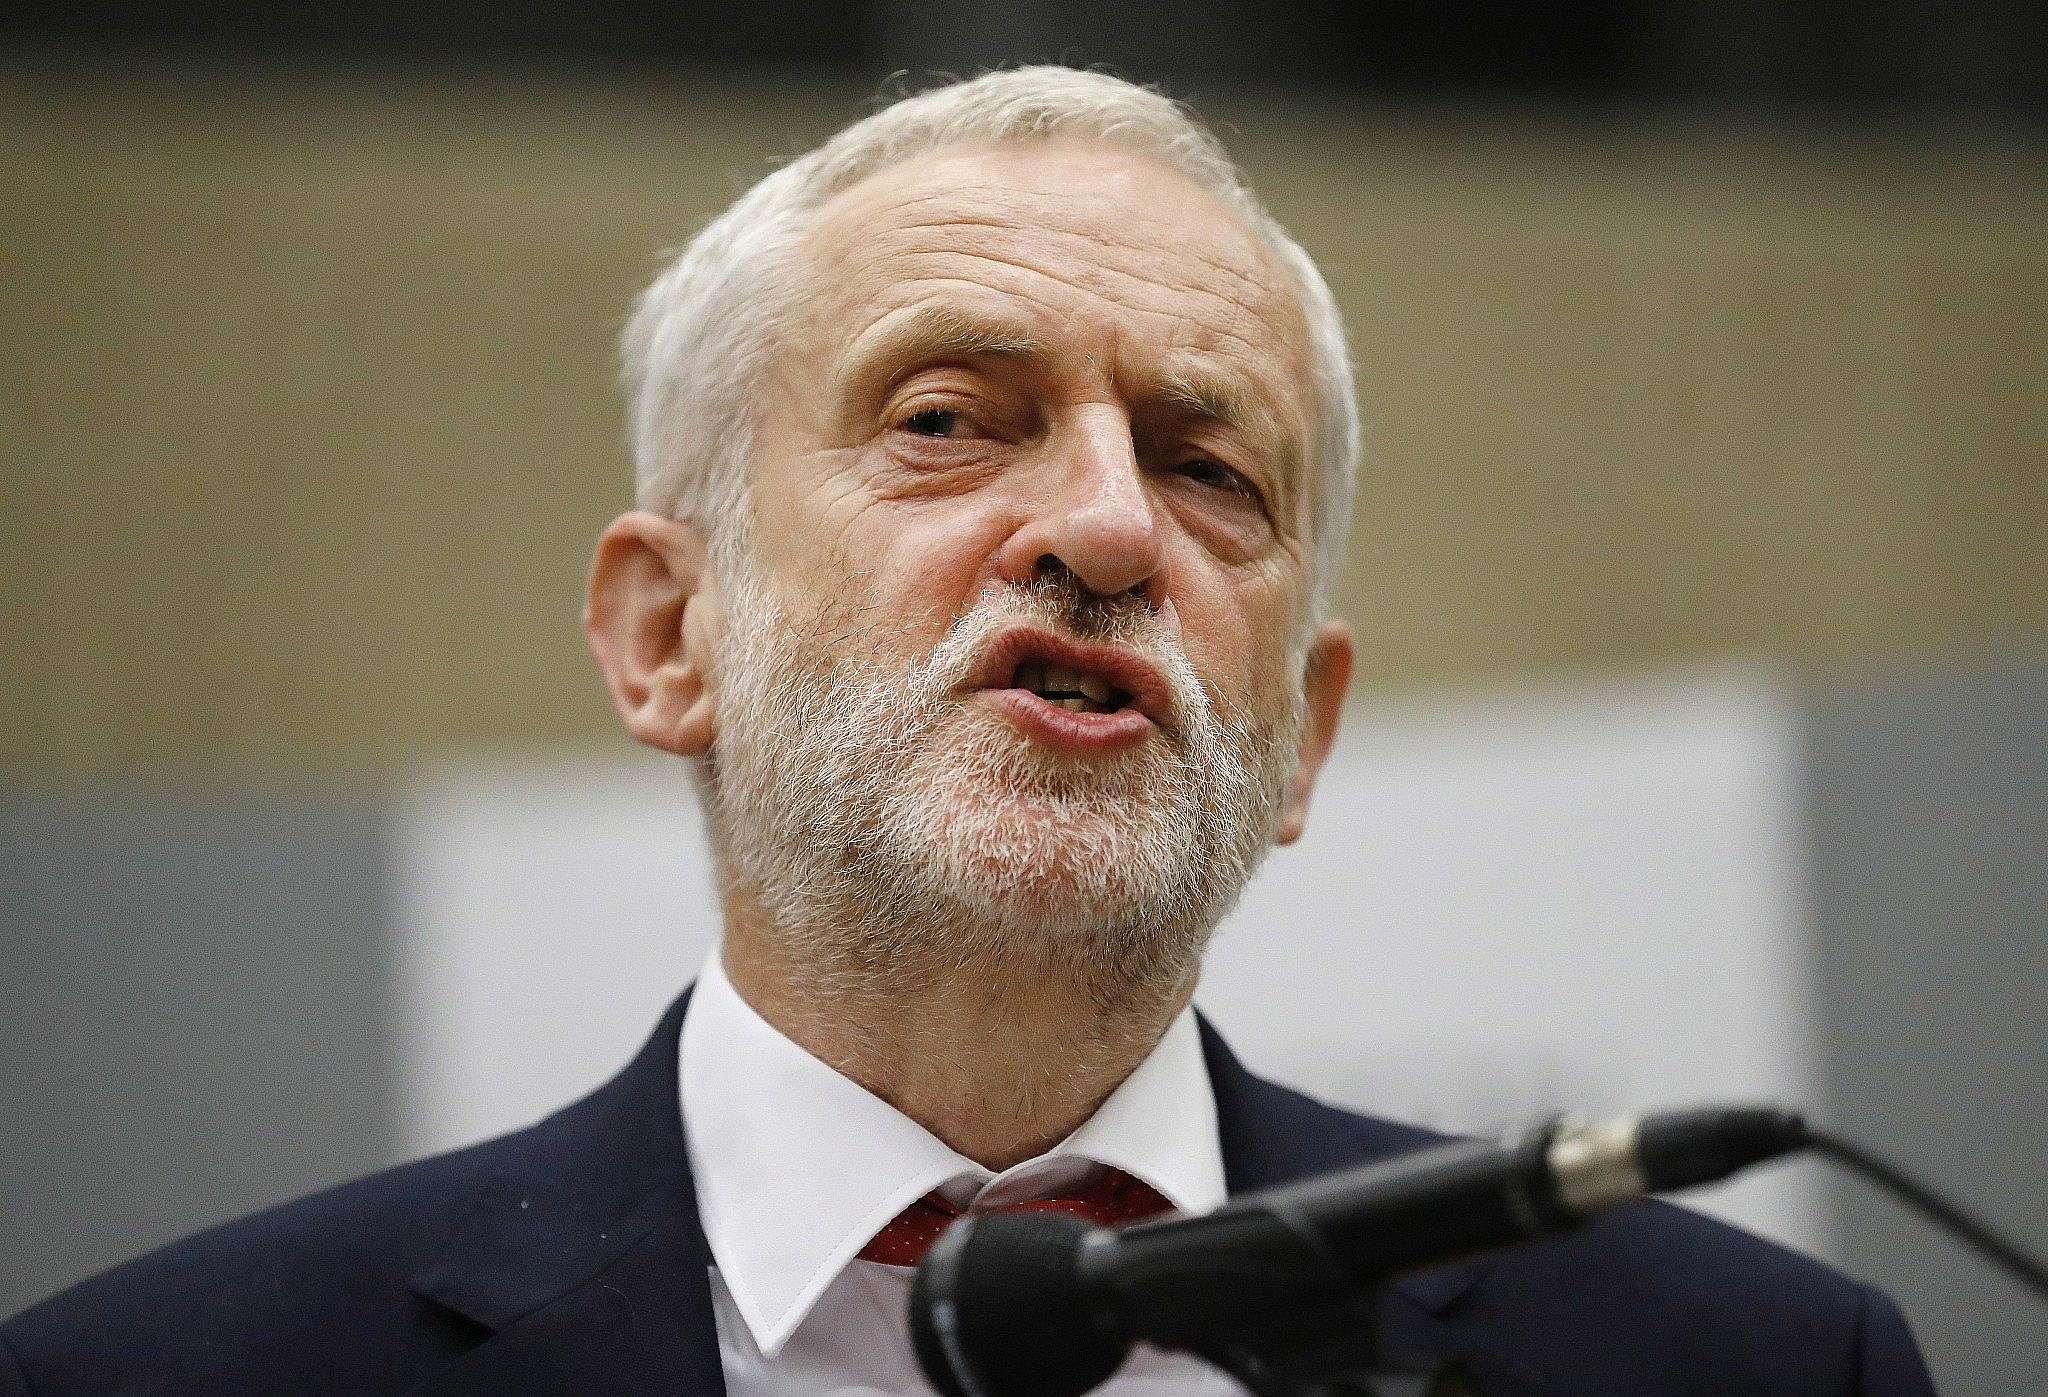 Jewish groups to meet Corbyn